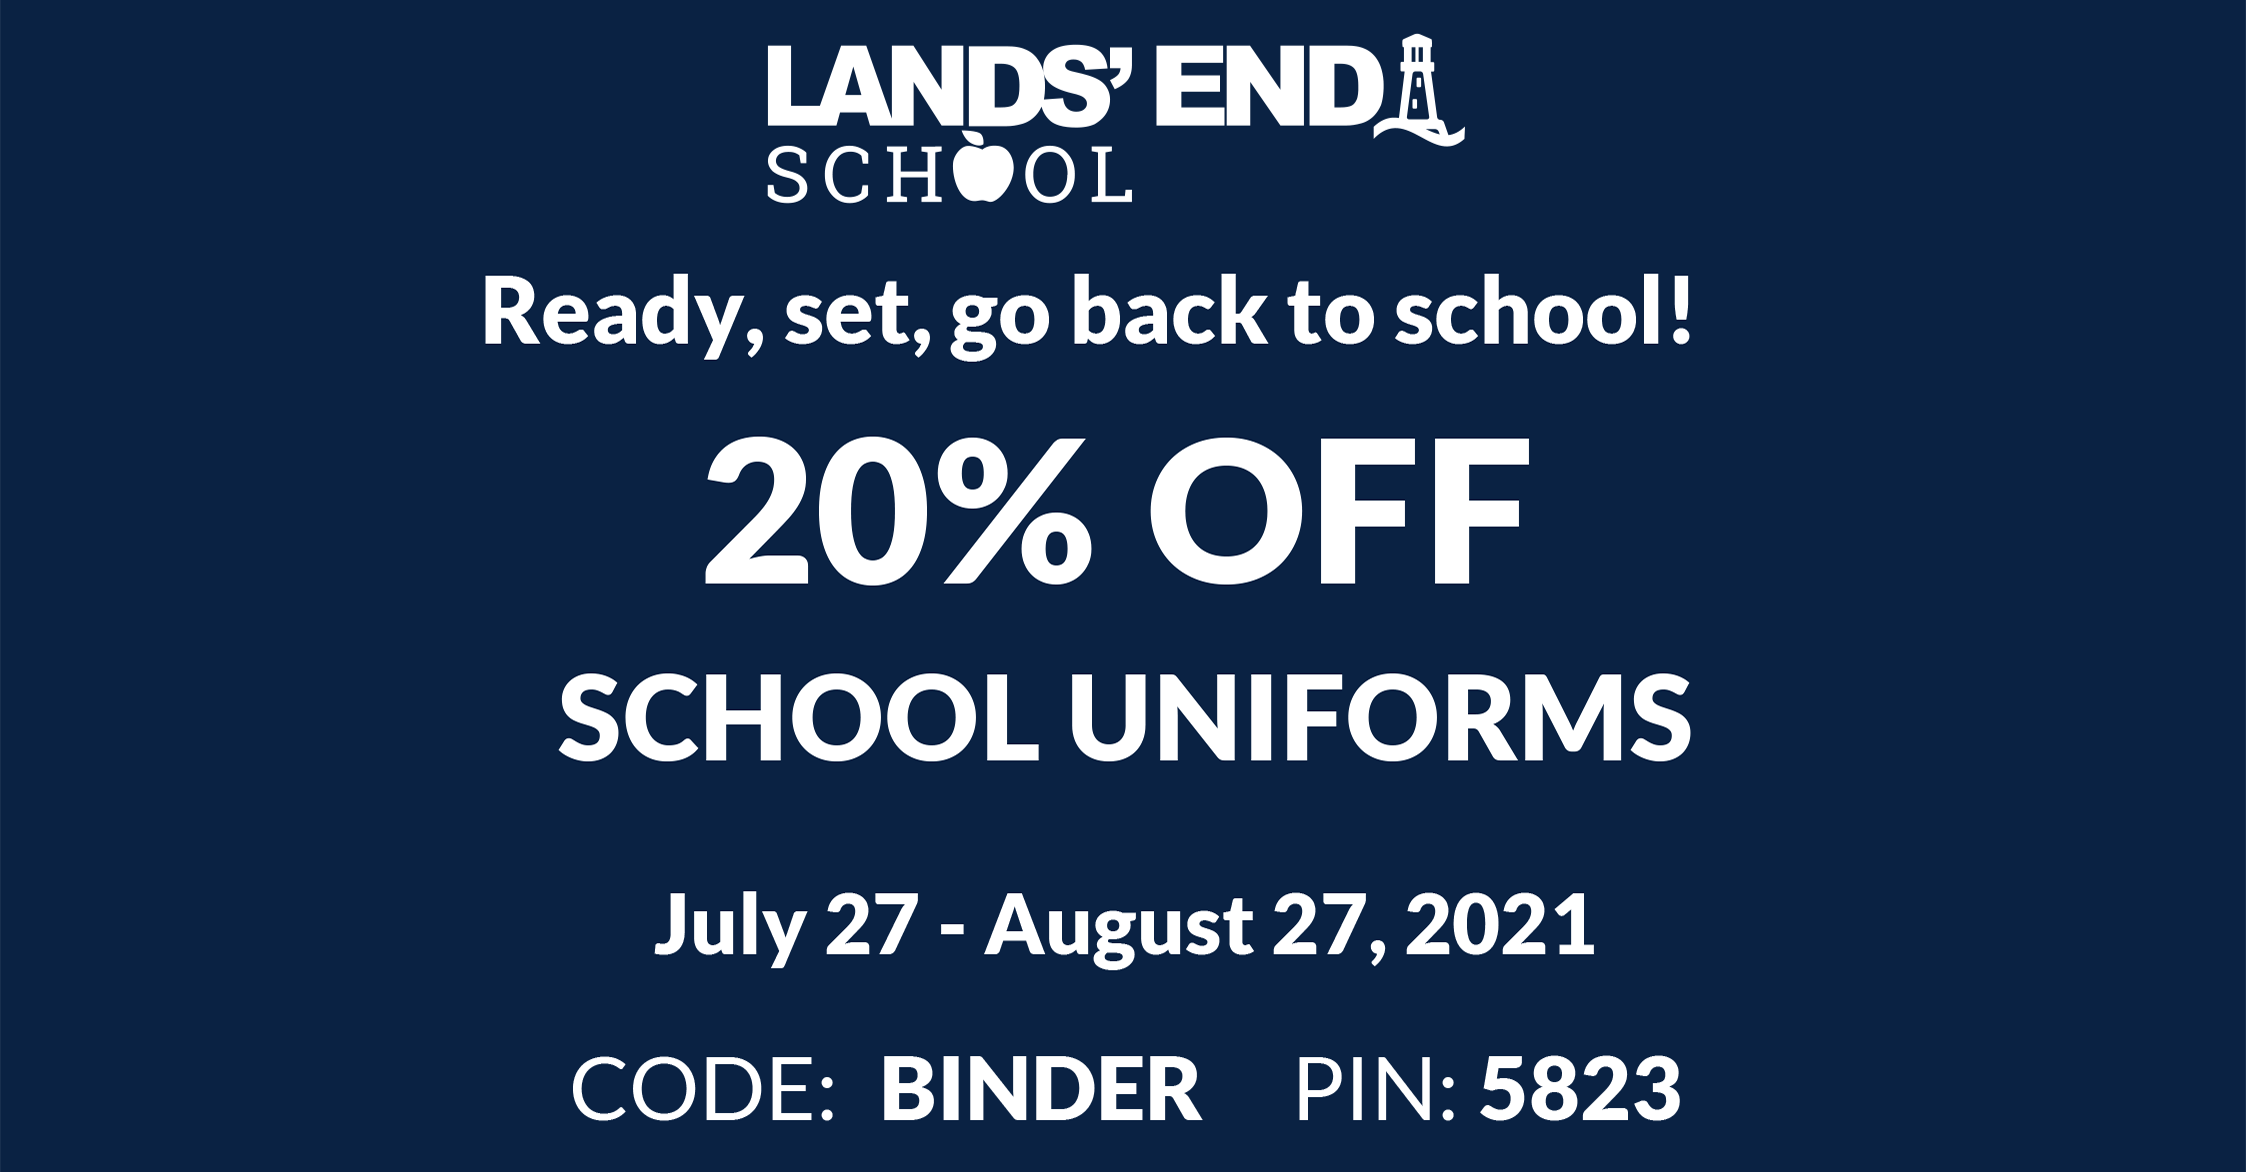 Christian Academy School System   Lands' End Uniforms   20% OFF   July 27 - August 27